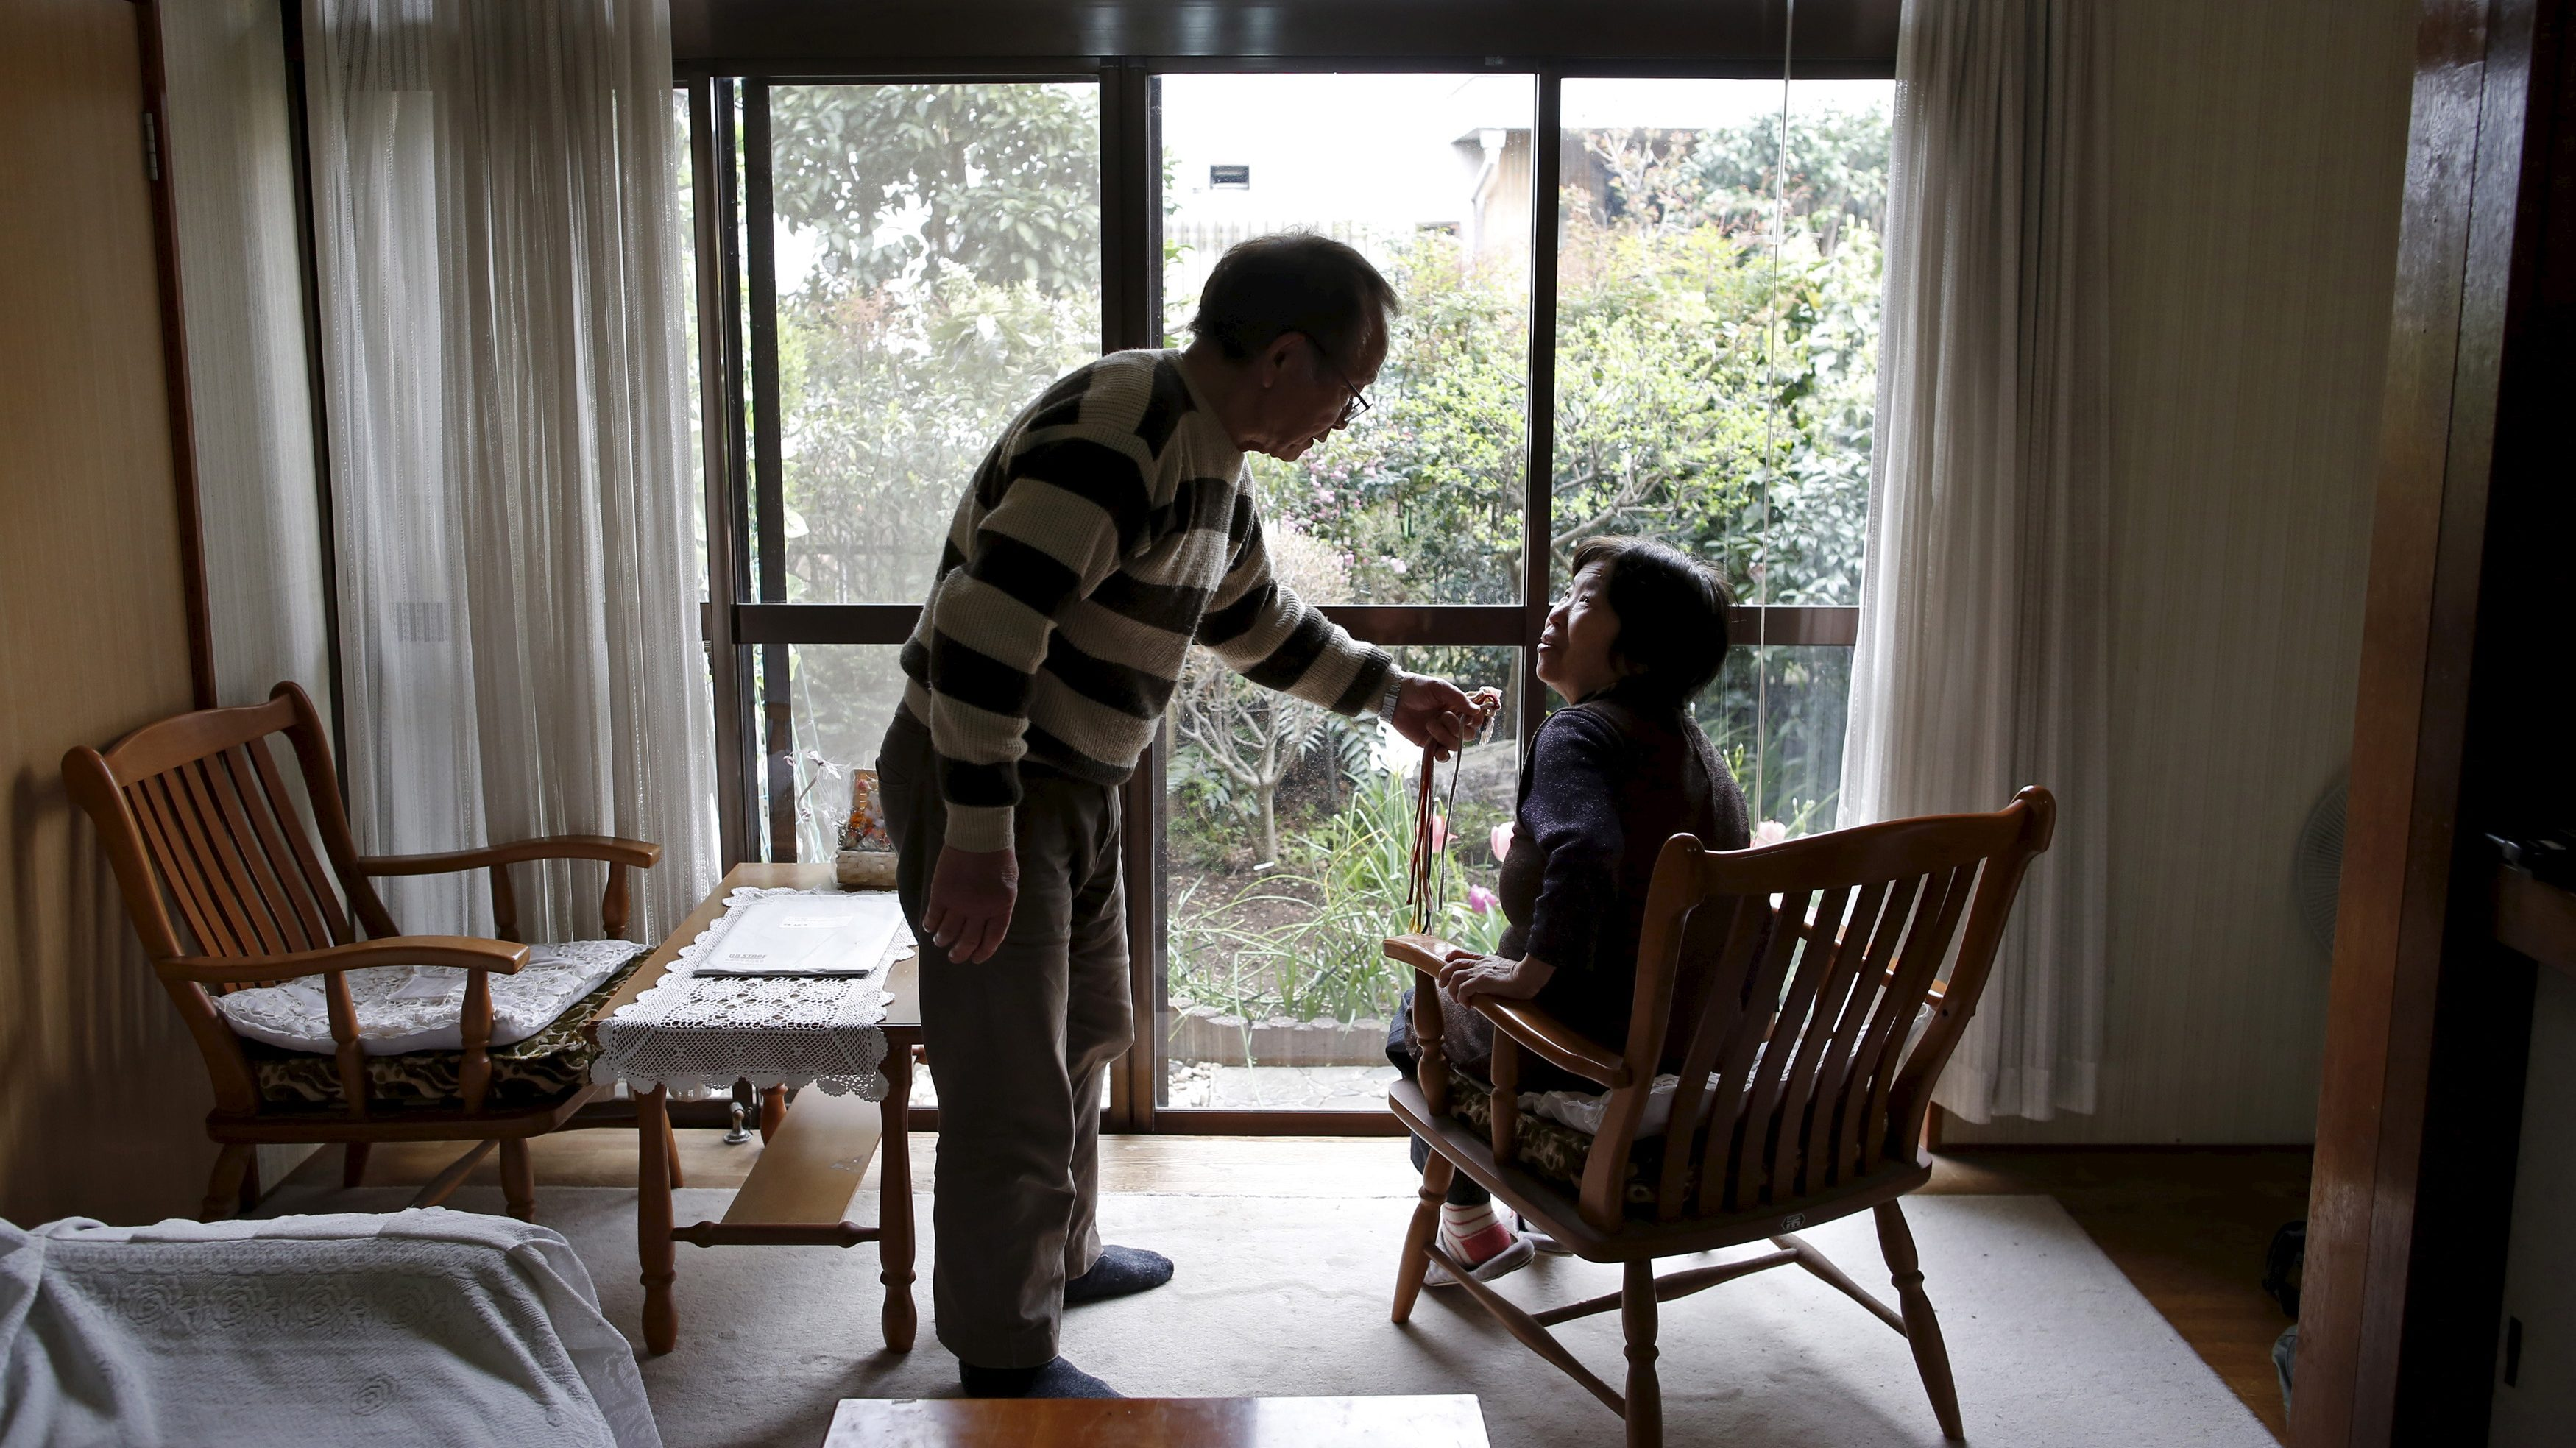 72-year-old Kanemasa Ito (L) and his 68-year-old wife Kimiko who was diagnosed with dementia 11 years ago, chat at their home in Kawasaki, south of Tokyo, Japan, April 6, 2016. Encouraging people with dementia to speak out is part of Japan's effort to ease the negative image of a disorder that affects nearly 5 million citizens and is forecast to affect 7 million, or one in five Japanese age 65 or over, by 2025.